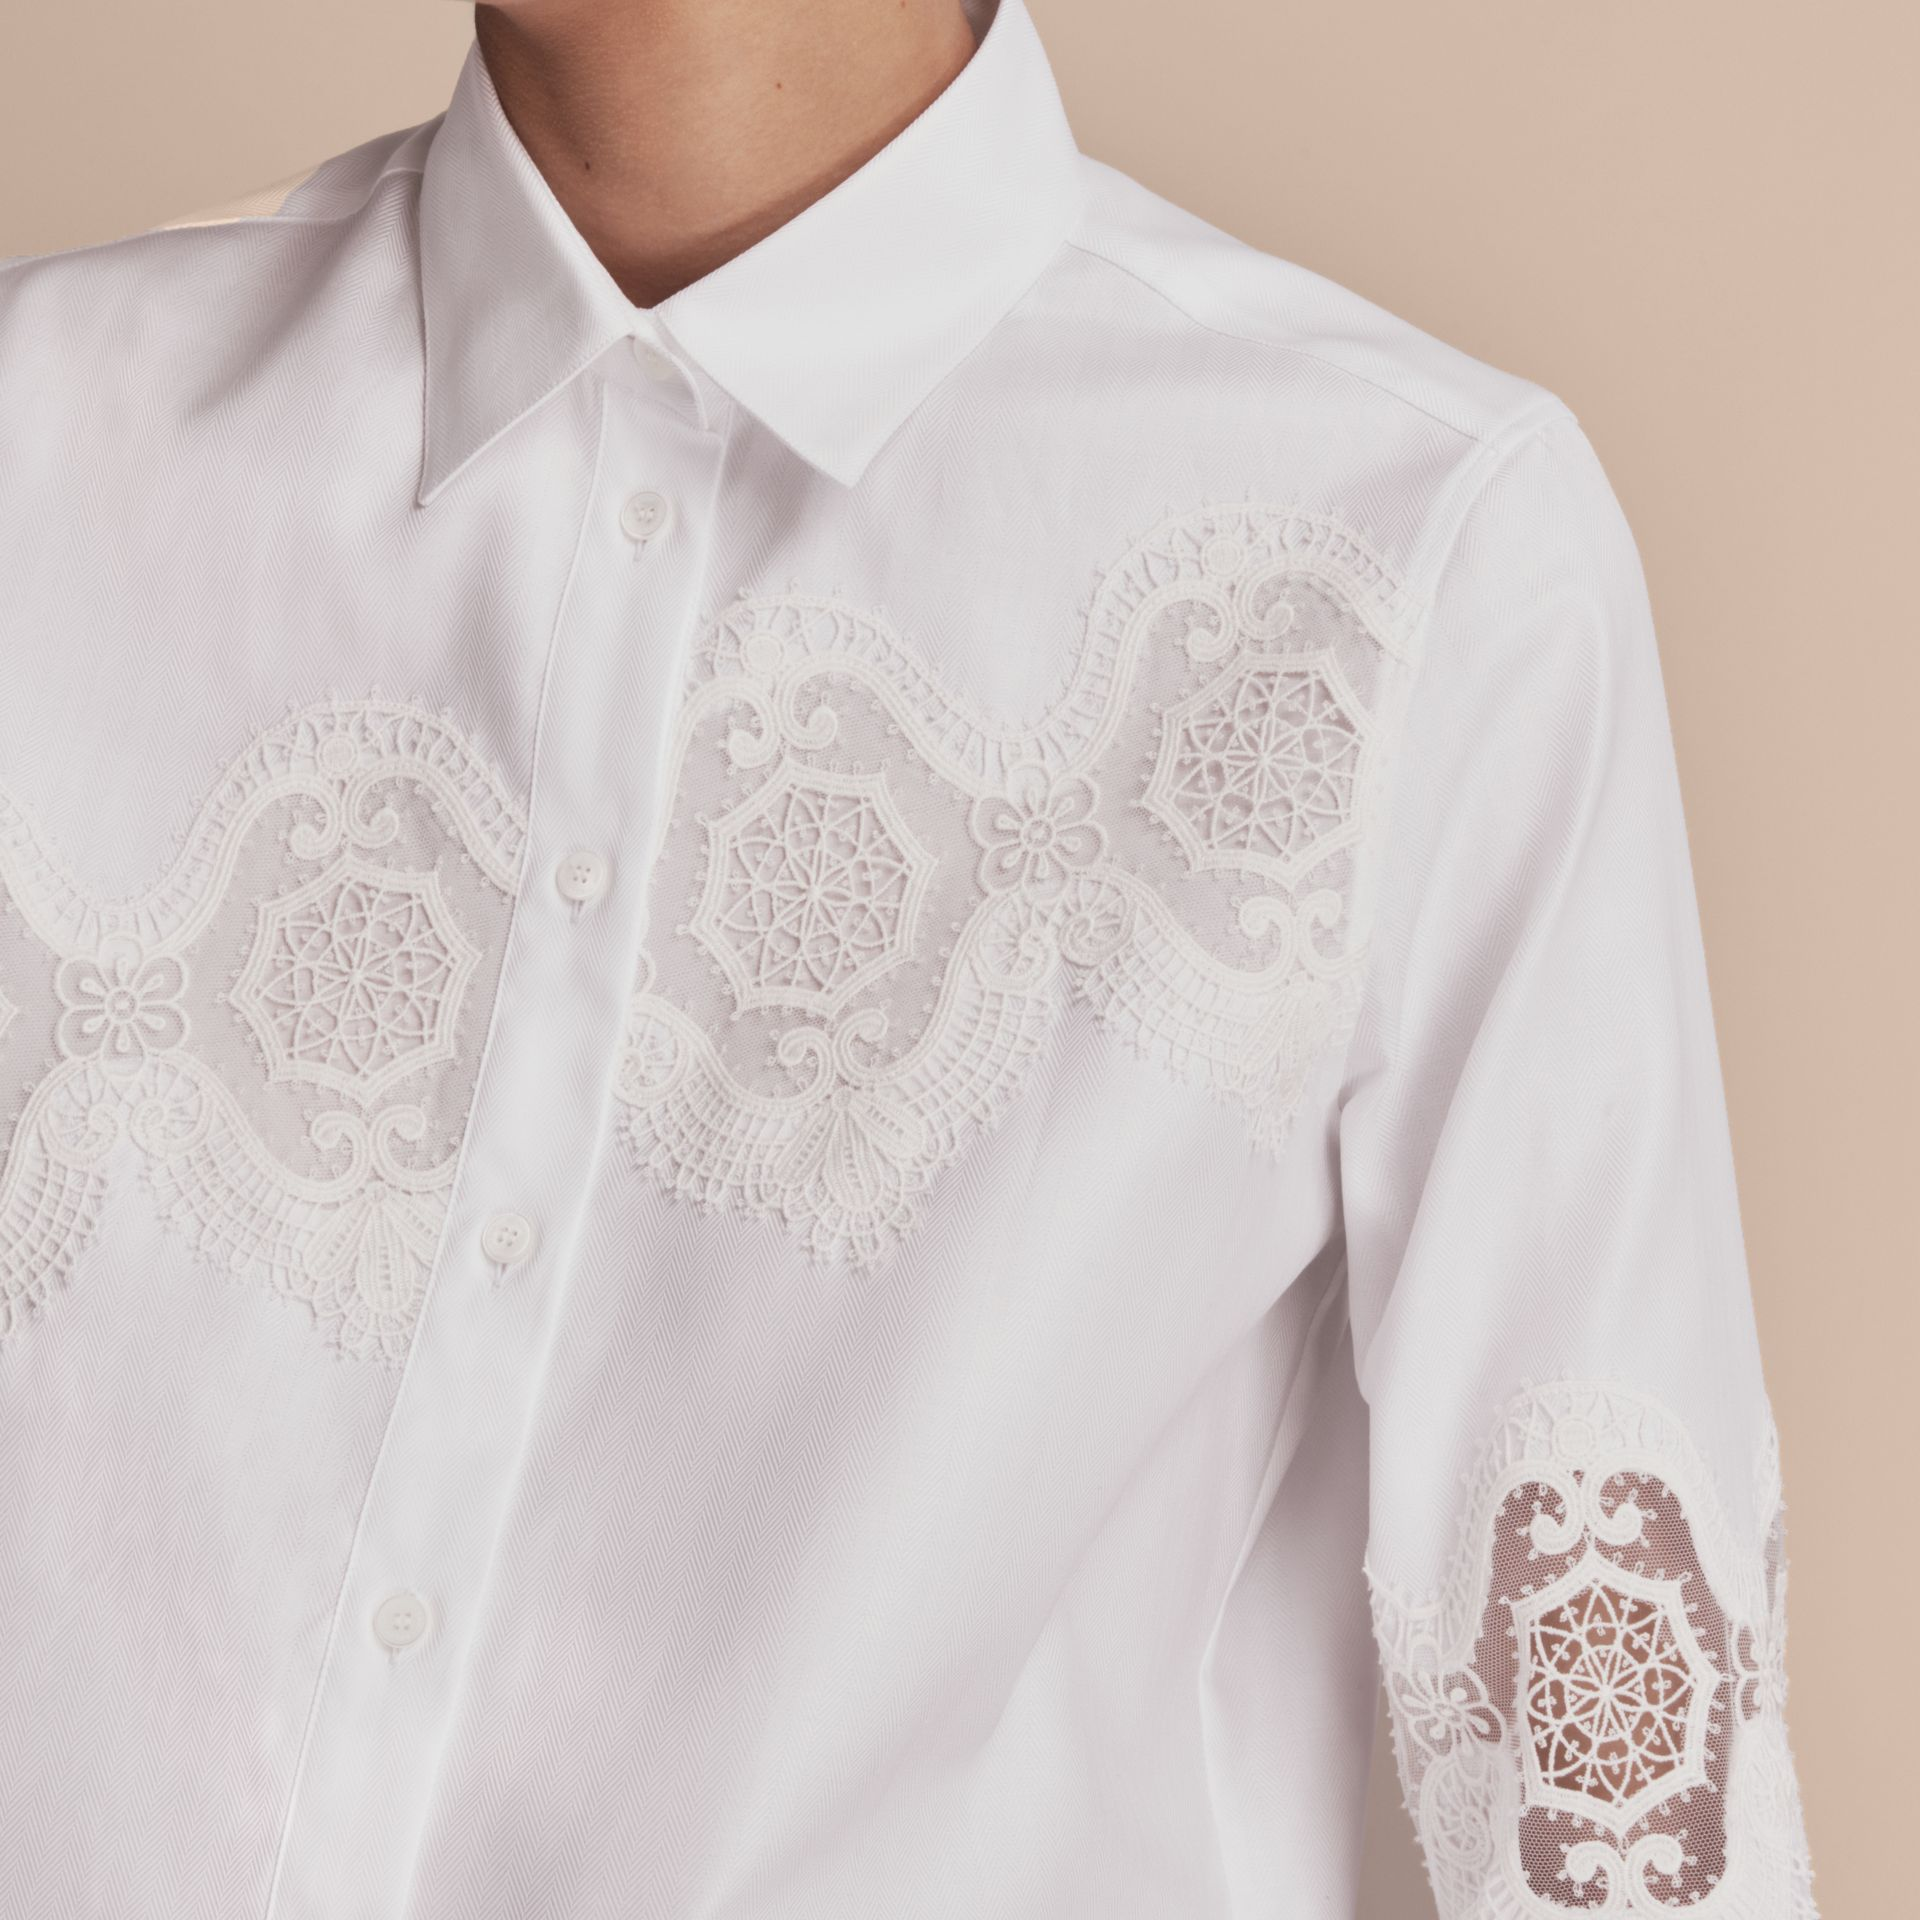 Lace Cutwork Herringbone Cotton Shirt in White - Women | Burberry Canada - gallery image 5